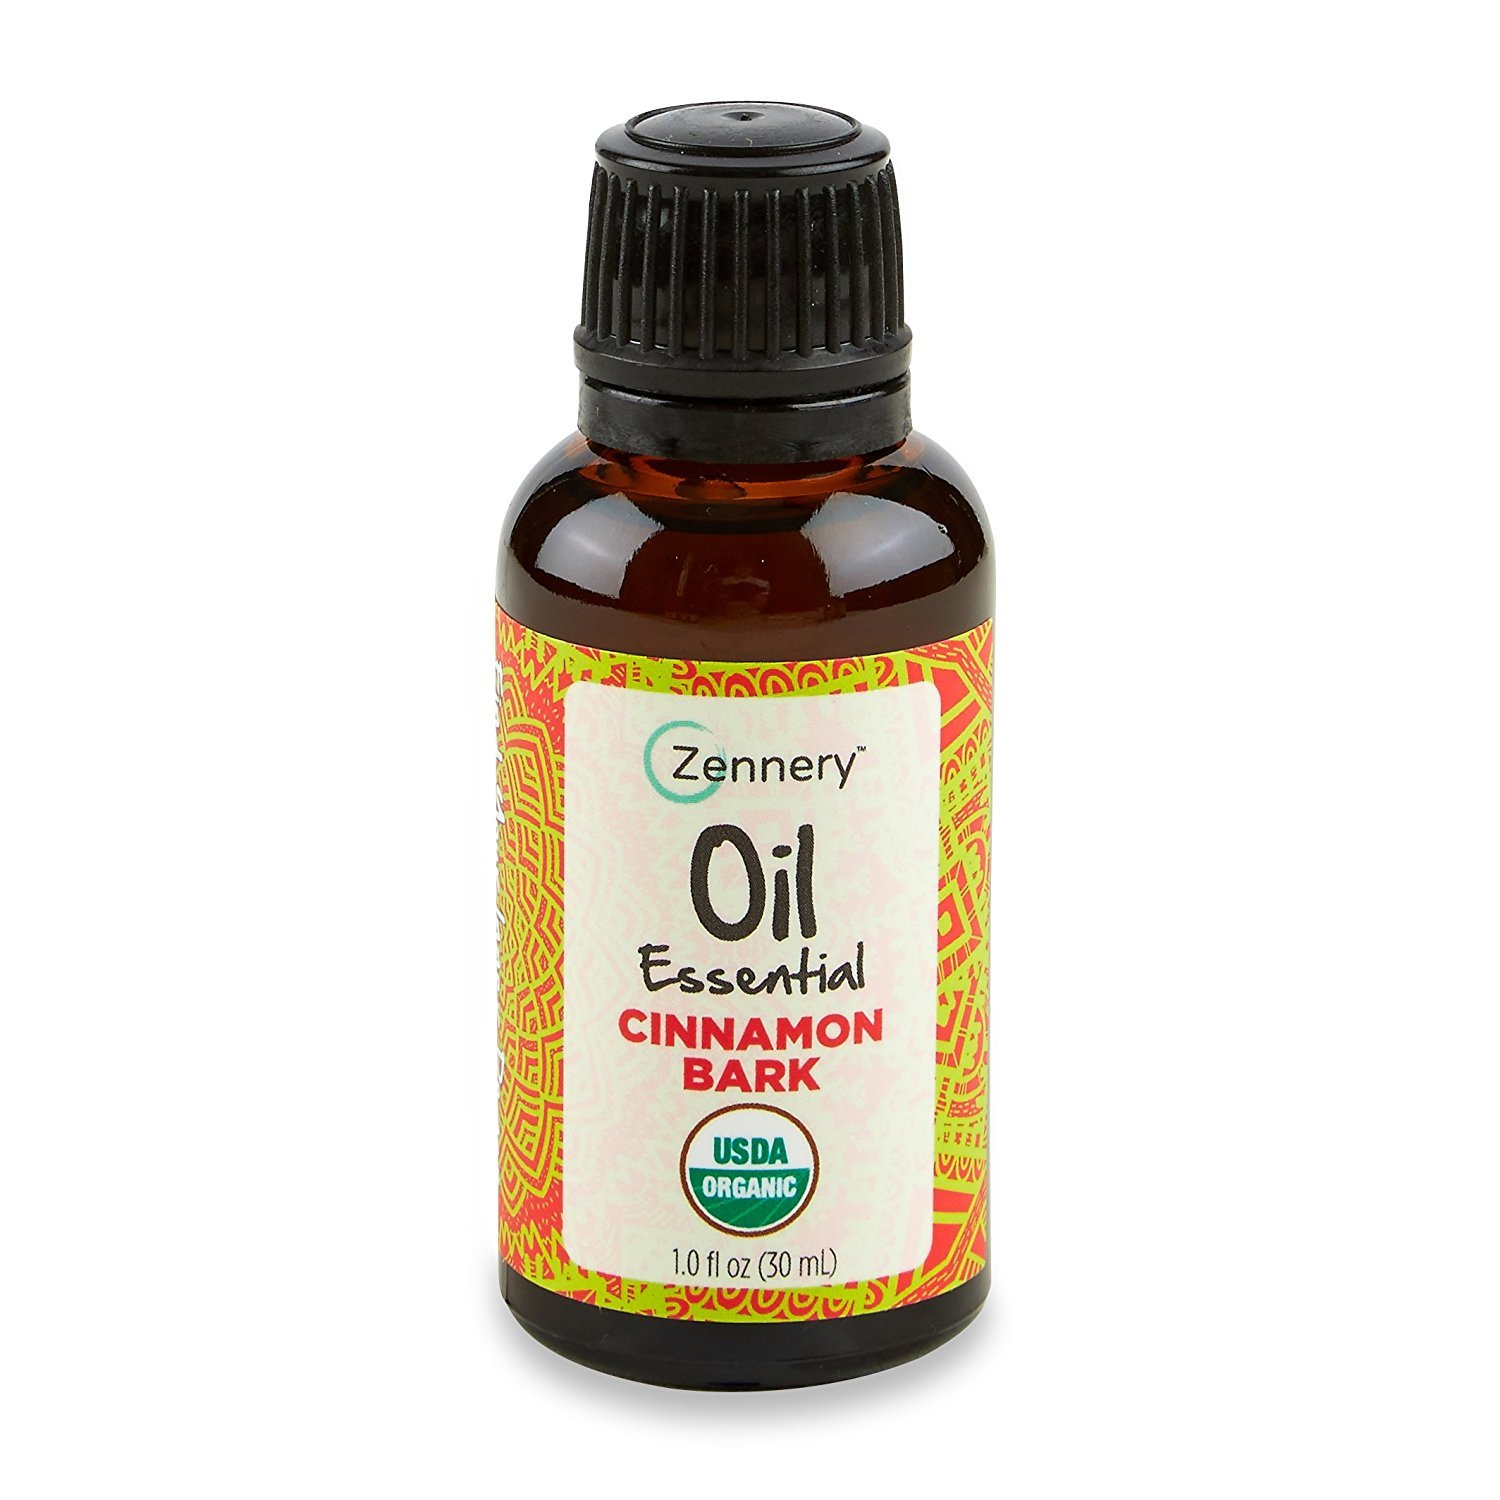 Zennery 100% Pure Cinnamon Bark Essential Oil (USDA CERTIFIED ORGANIC) 1oz (30ml) Cinnamomum verum - Great for diffusers, Topicals or with a Carrier Oil Therapeutic Grade *NOT TESTED ON ANIMALS* by Zennery